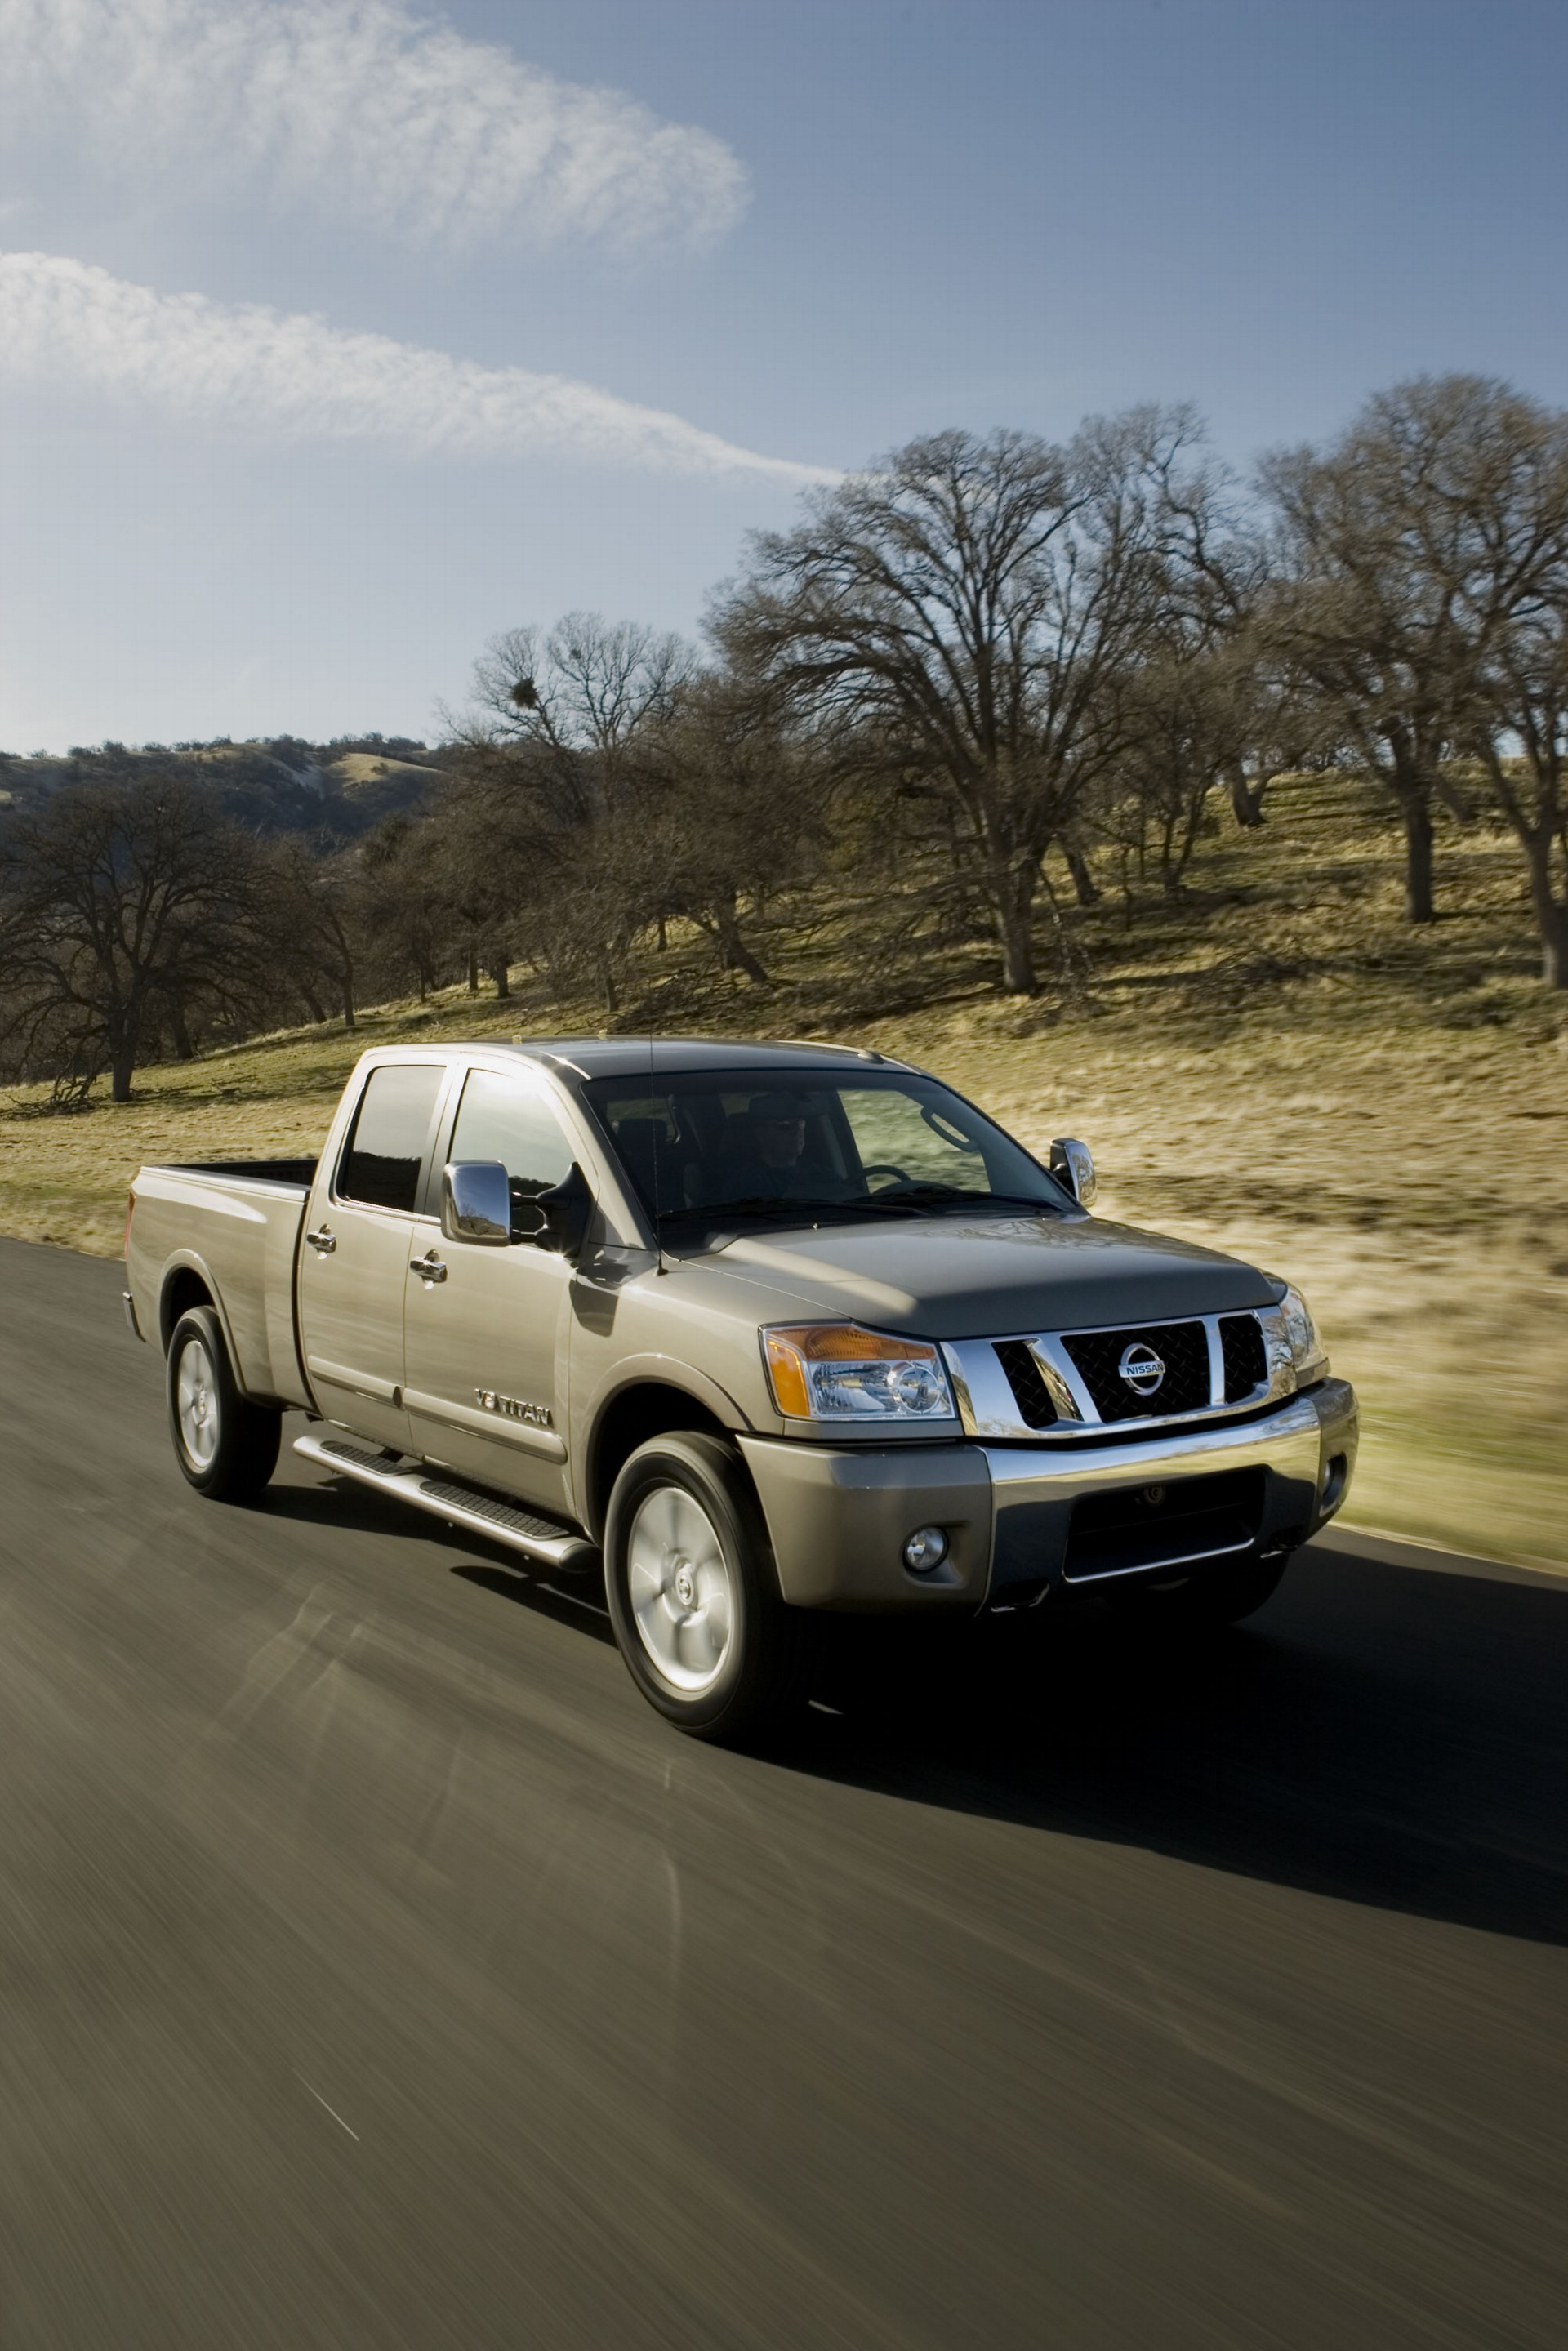 2008 nissan titan news and information. Black Bedroom Furniture Sets. Home Design Ideas